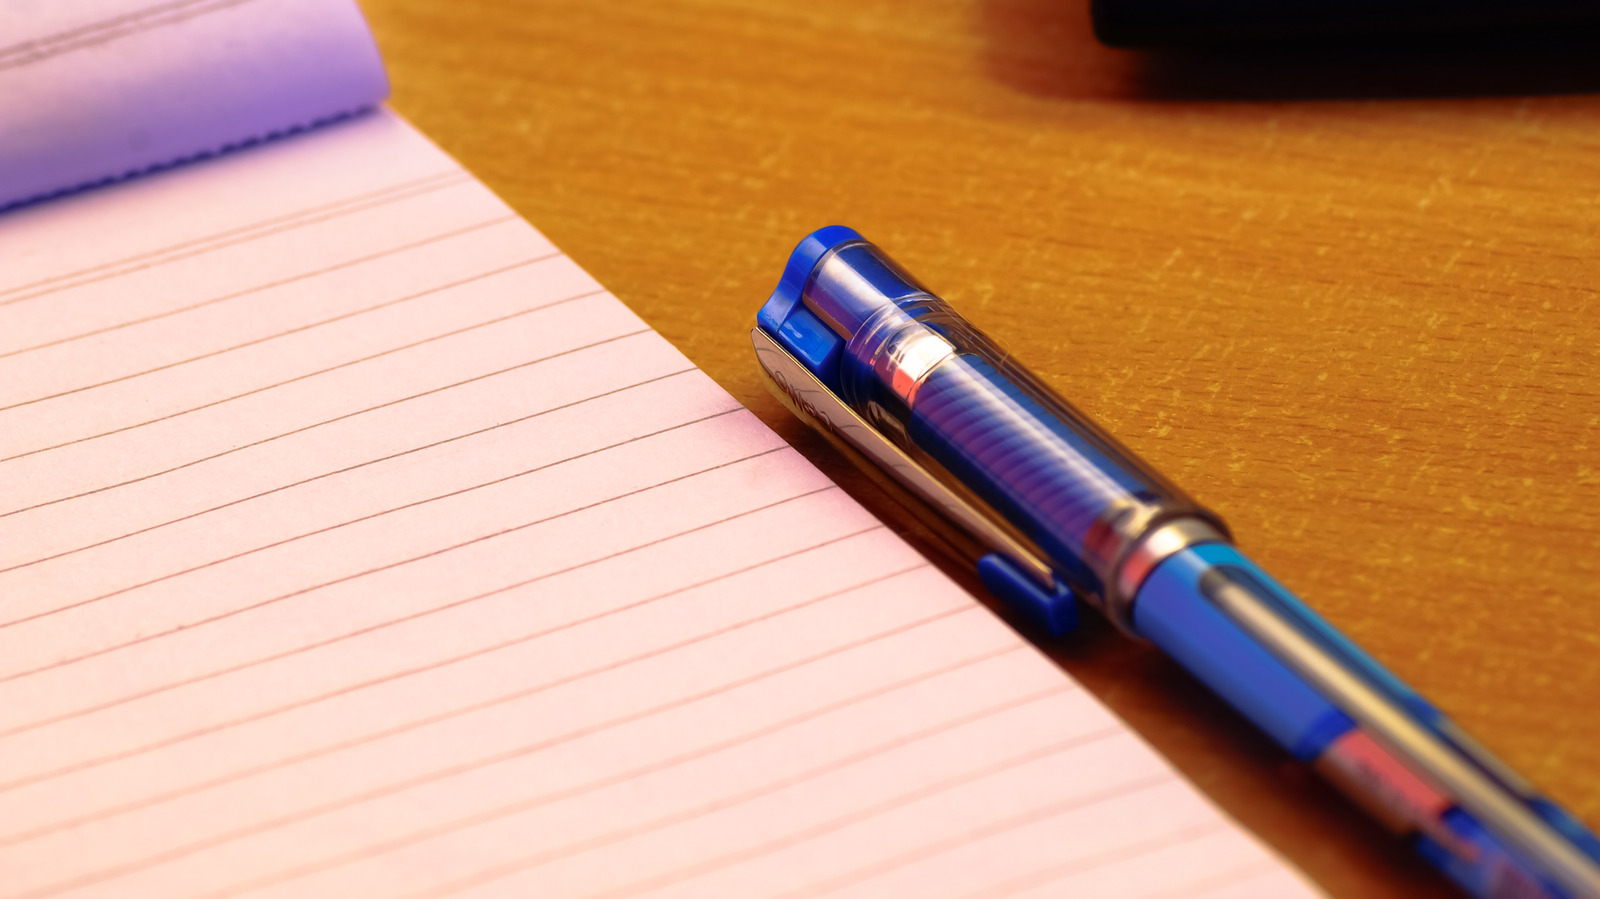 Blue Ball-point Pen Next to Notepad